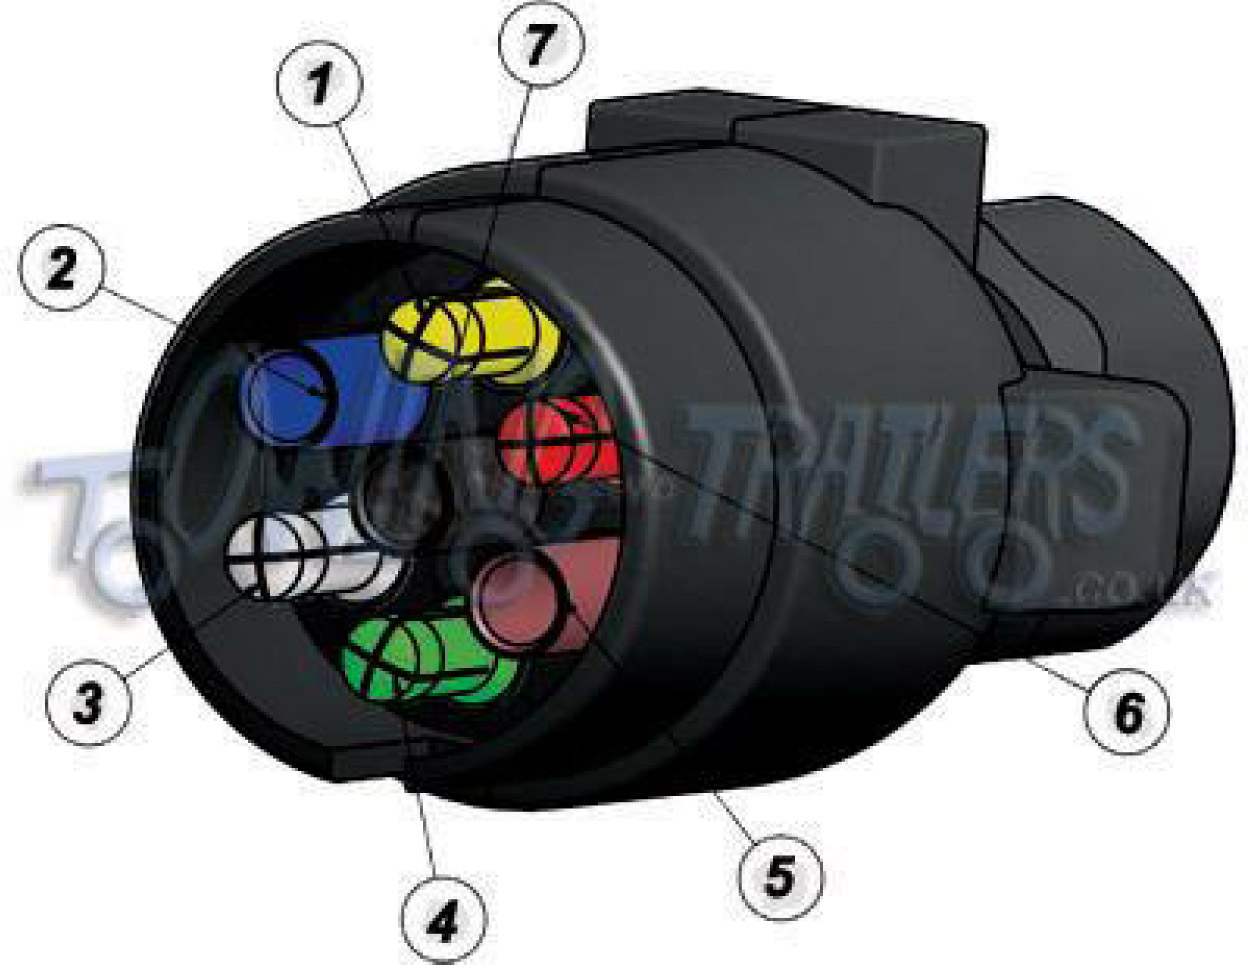 Trailer Electrics - Towing And Trailers Ltd - 7 Pin Trailer Socket Wiring Diagram